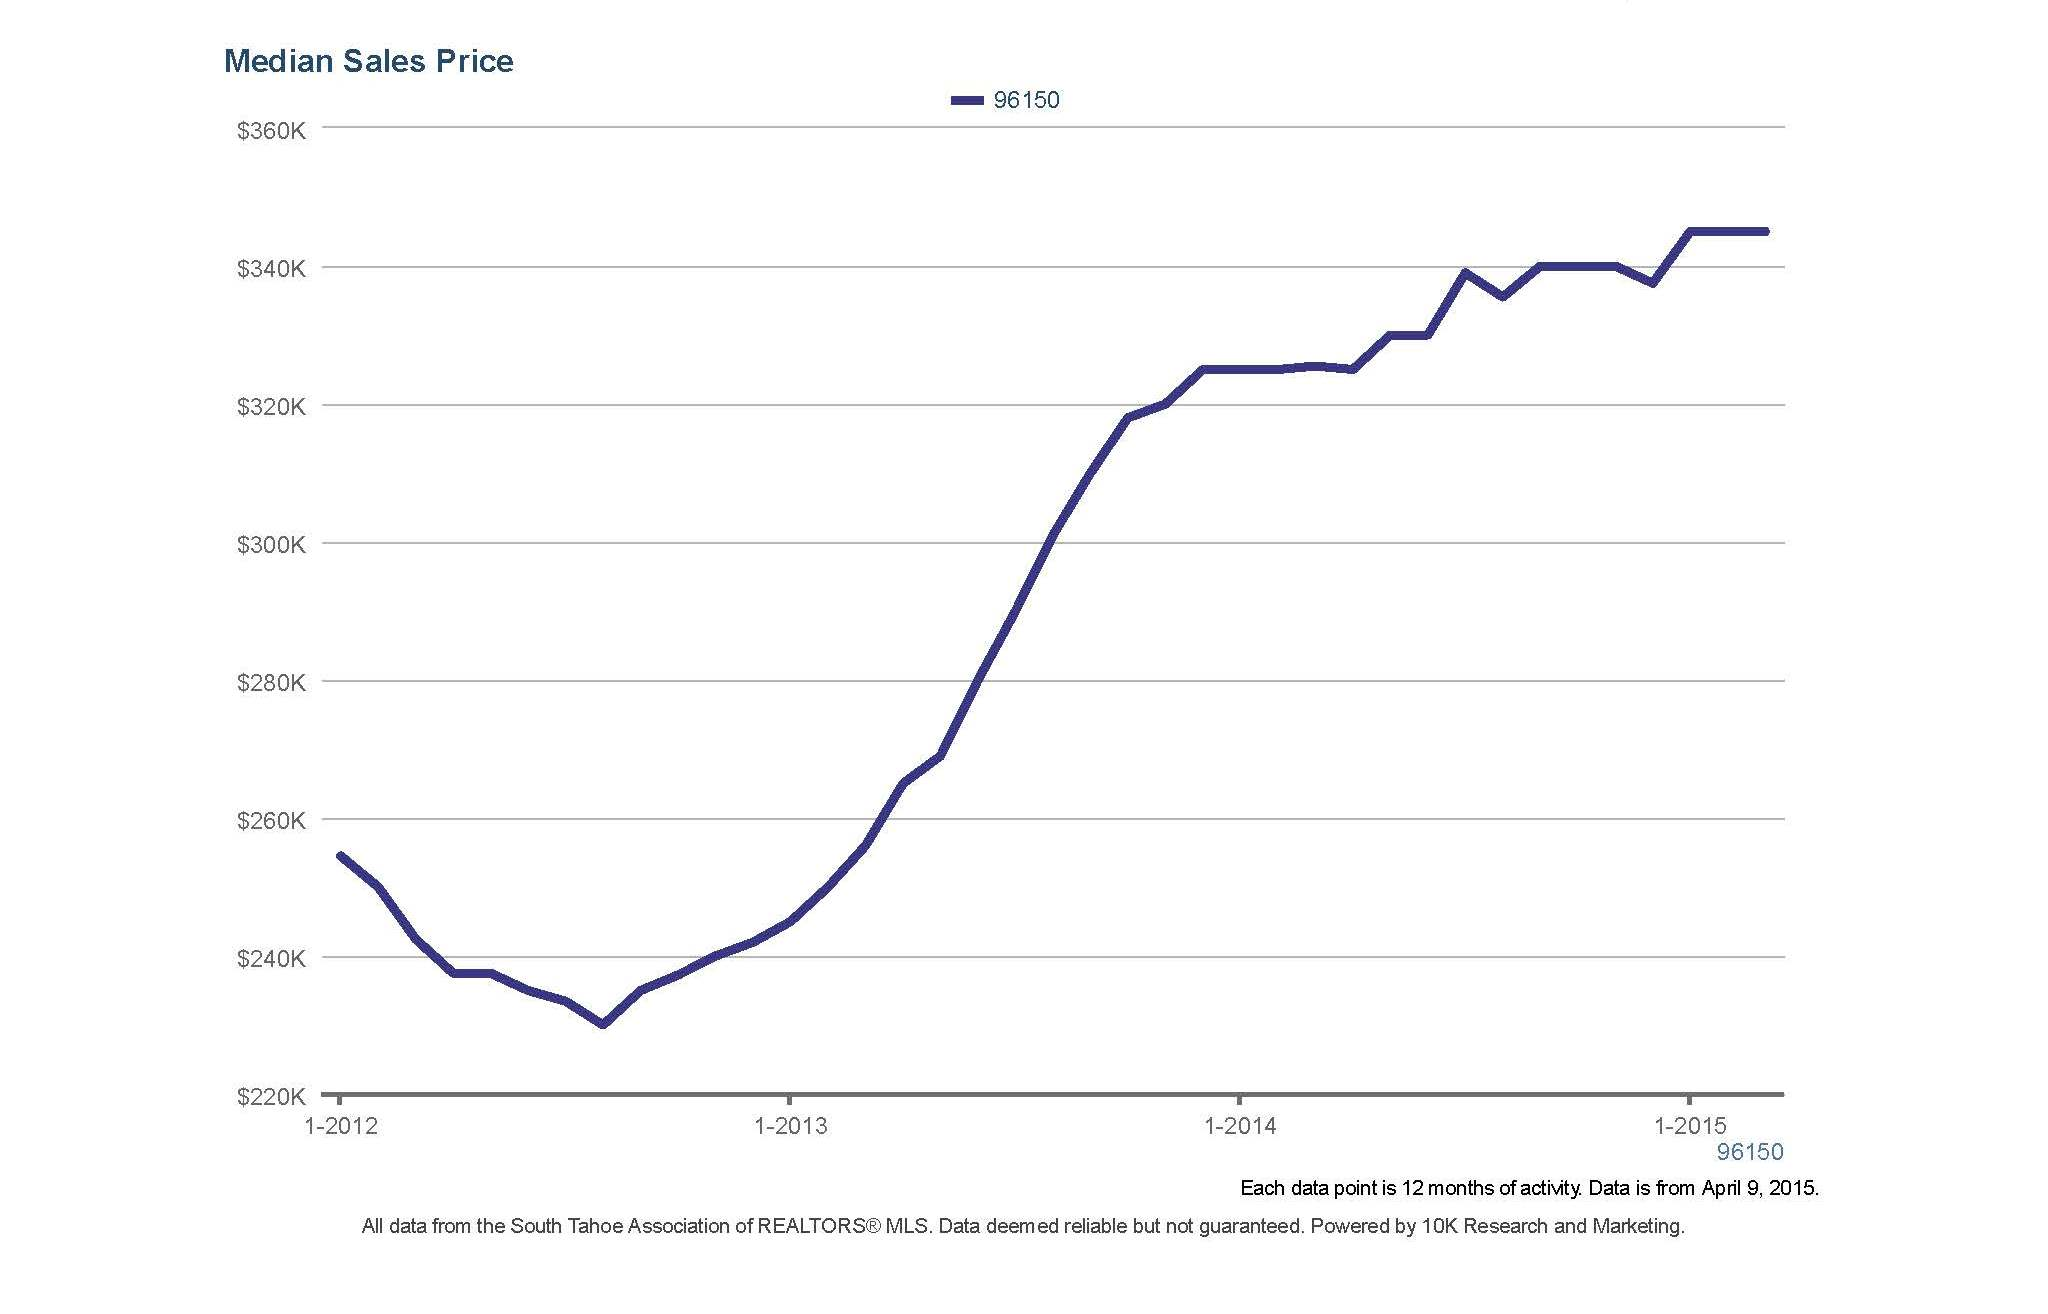 median sales price 2015 march